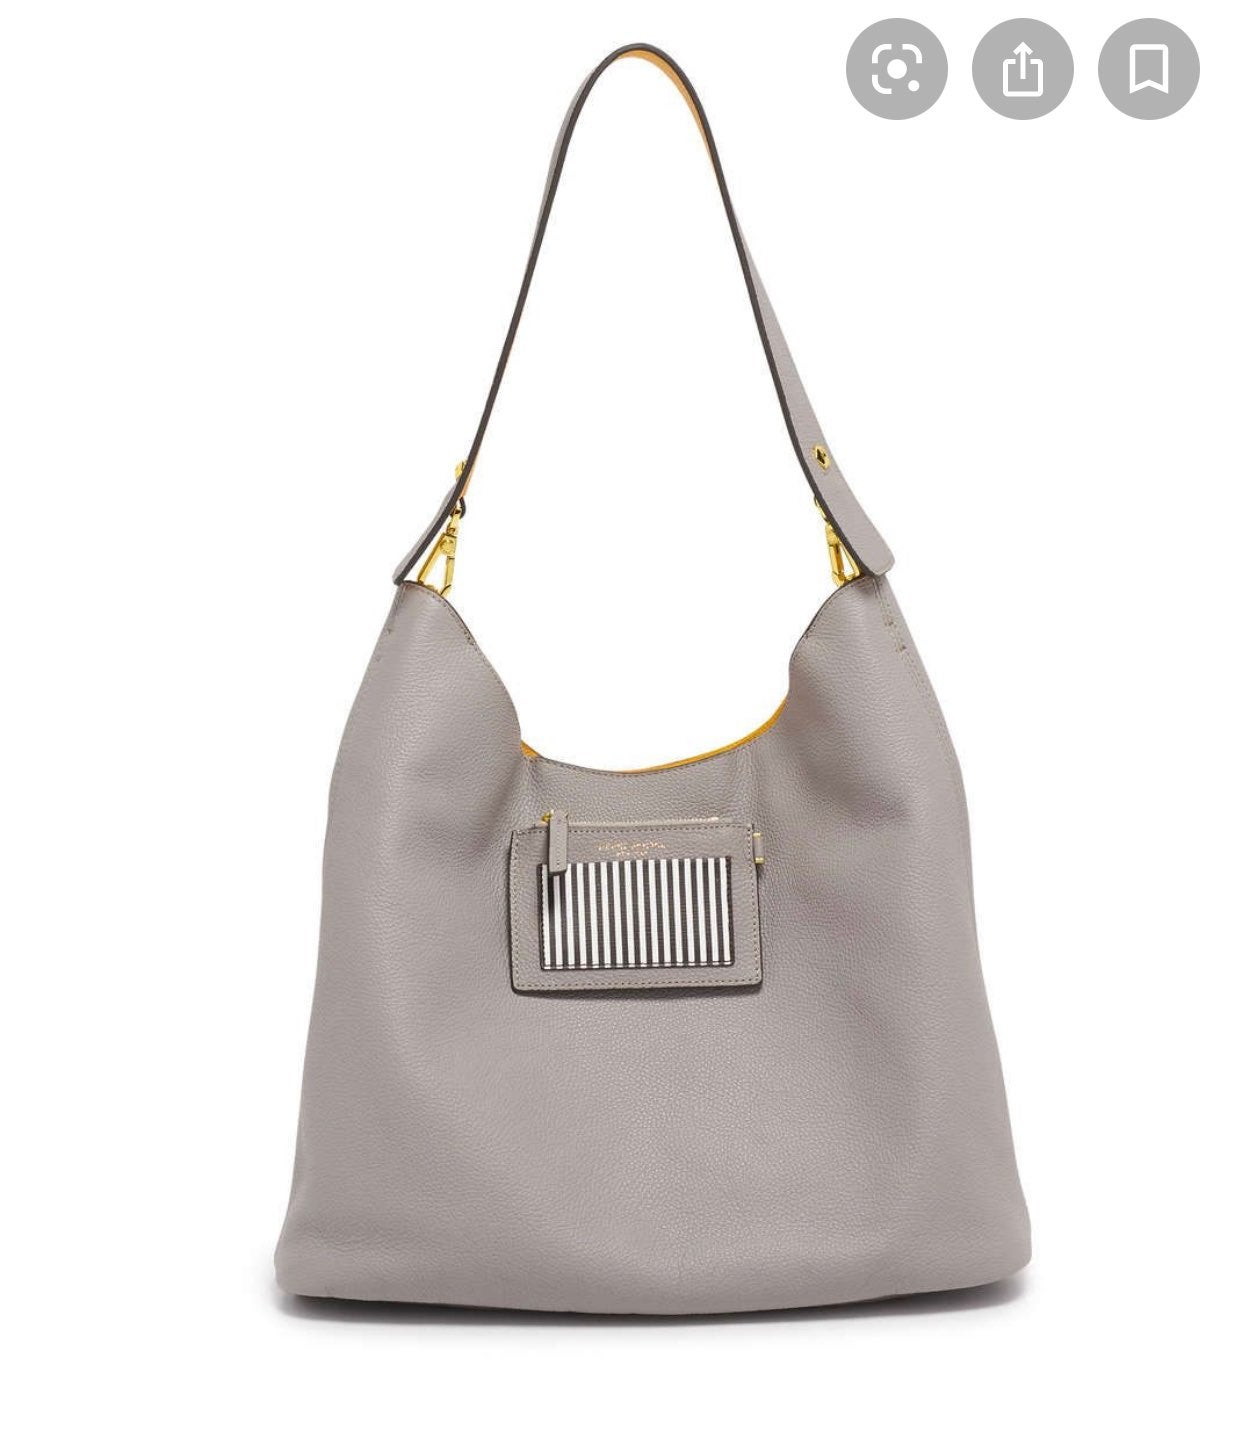 New Henri Bendel grey yellow influencer